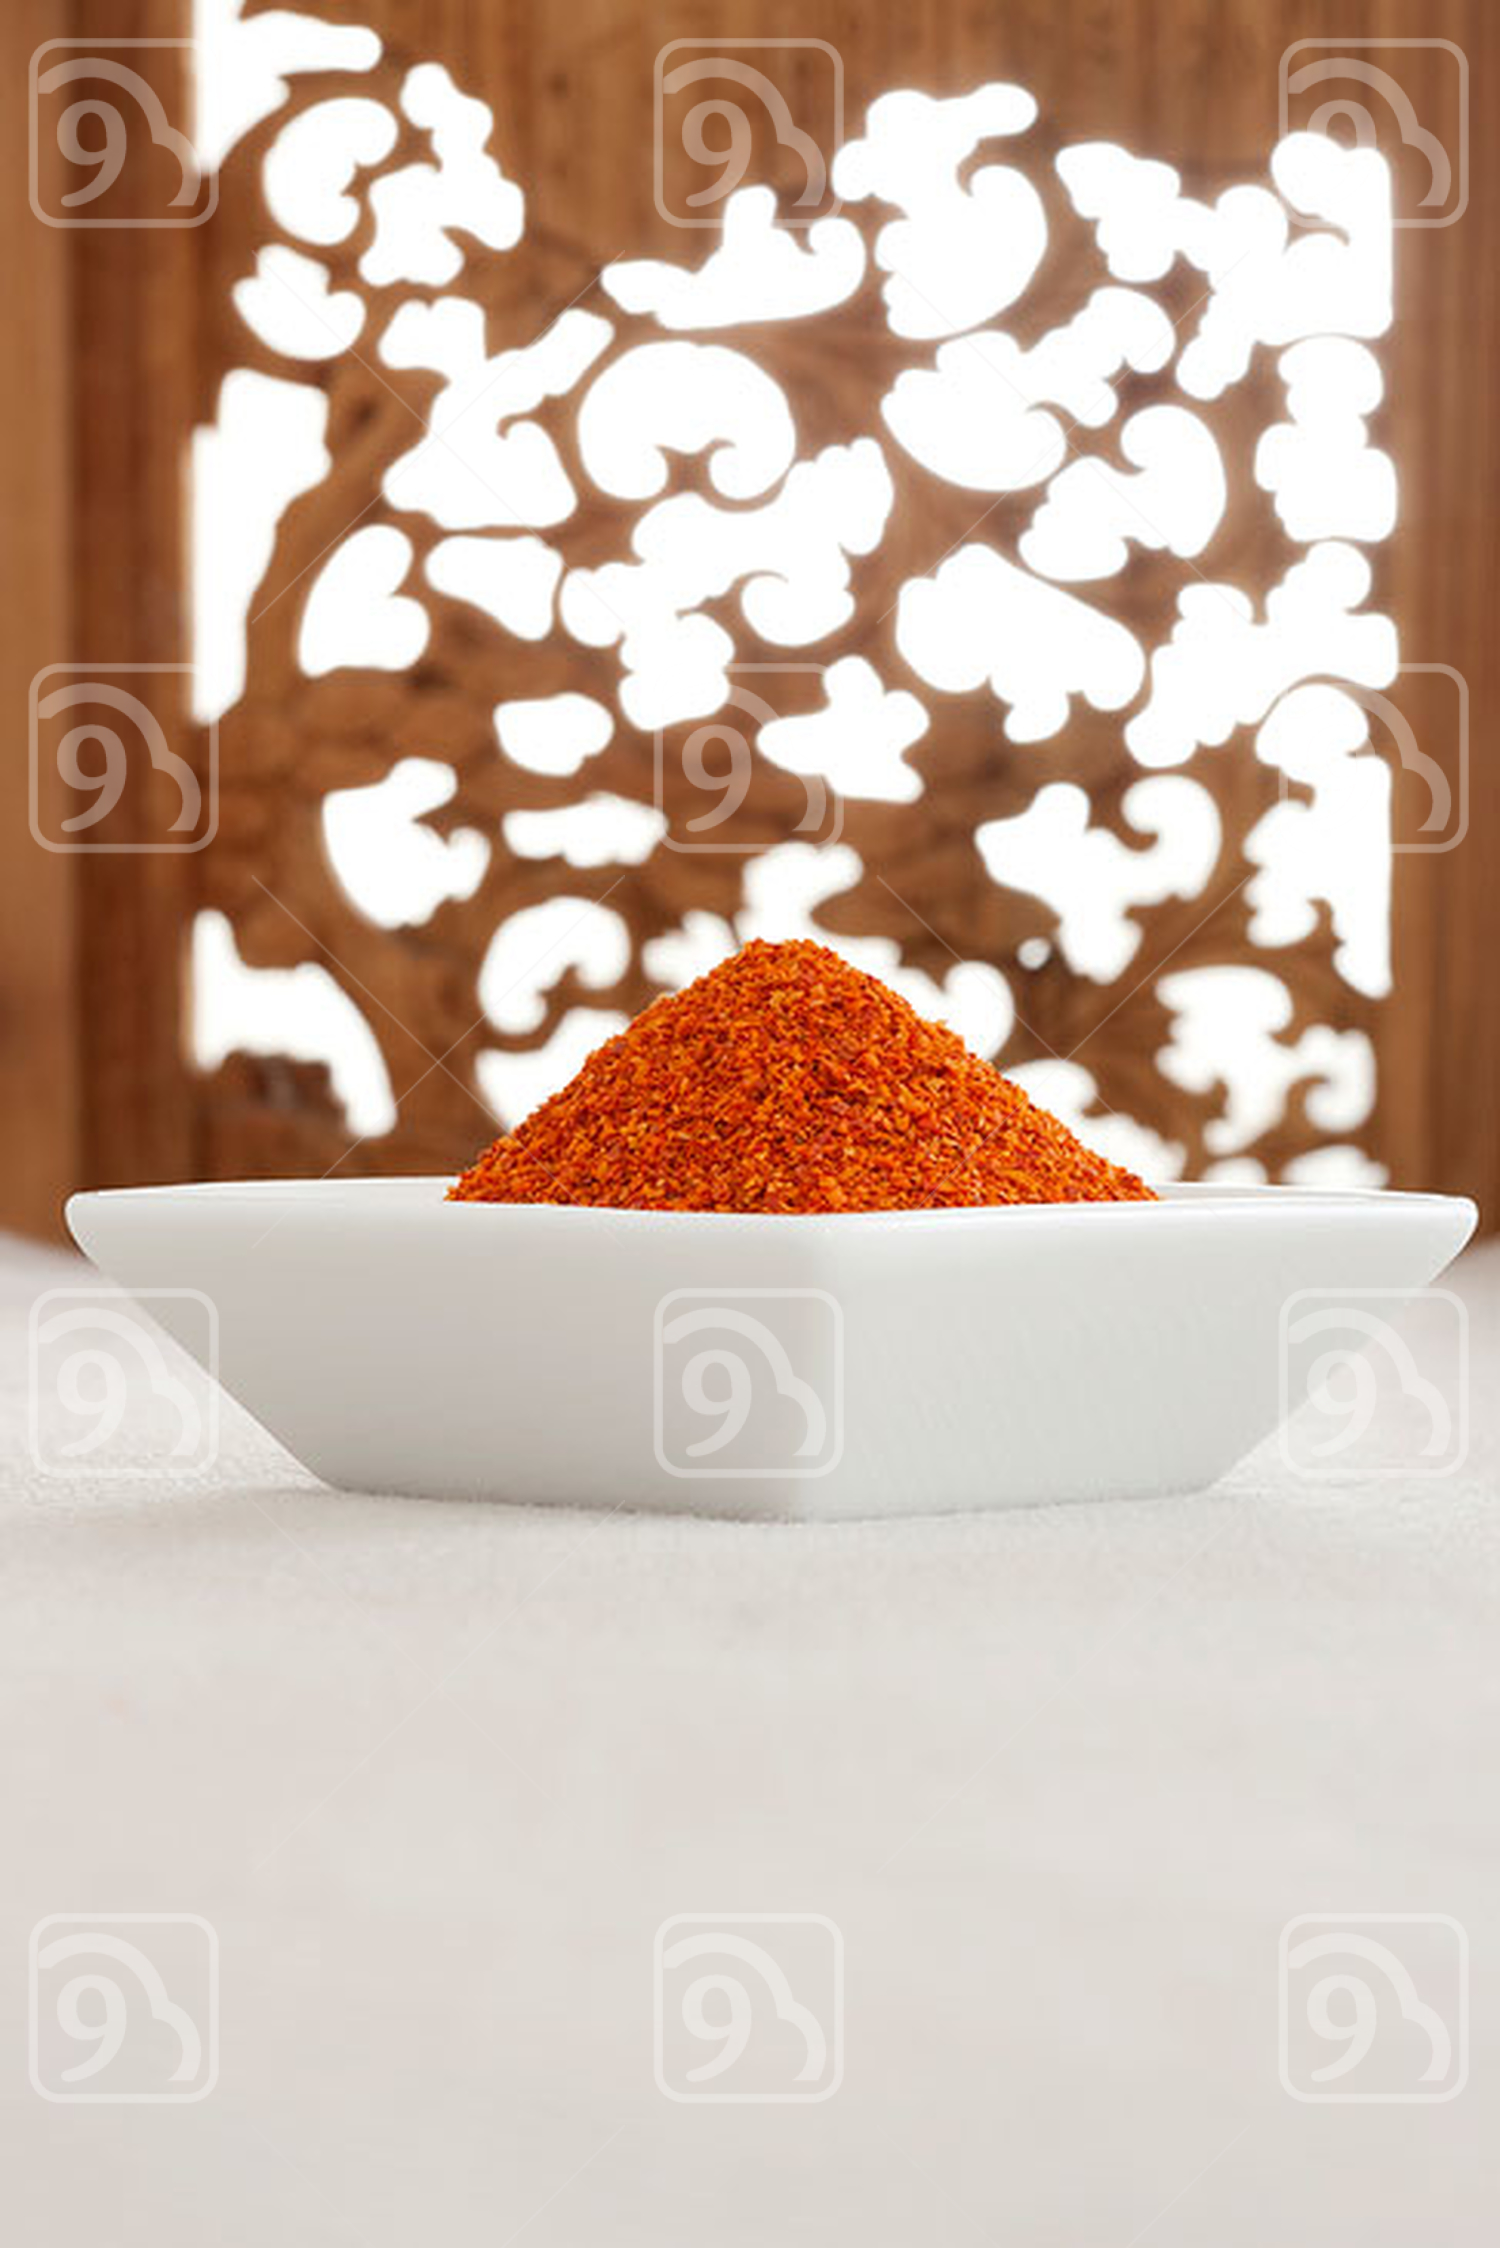 Close-up of red chilli powder